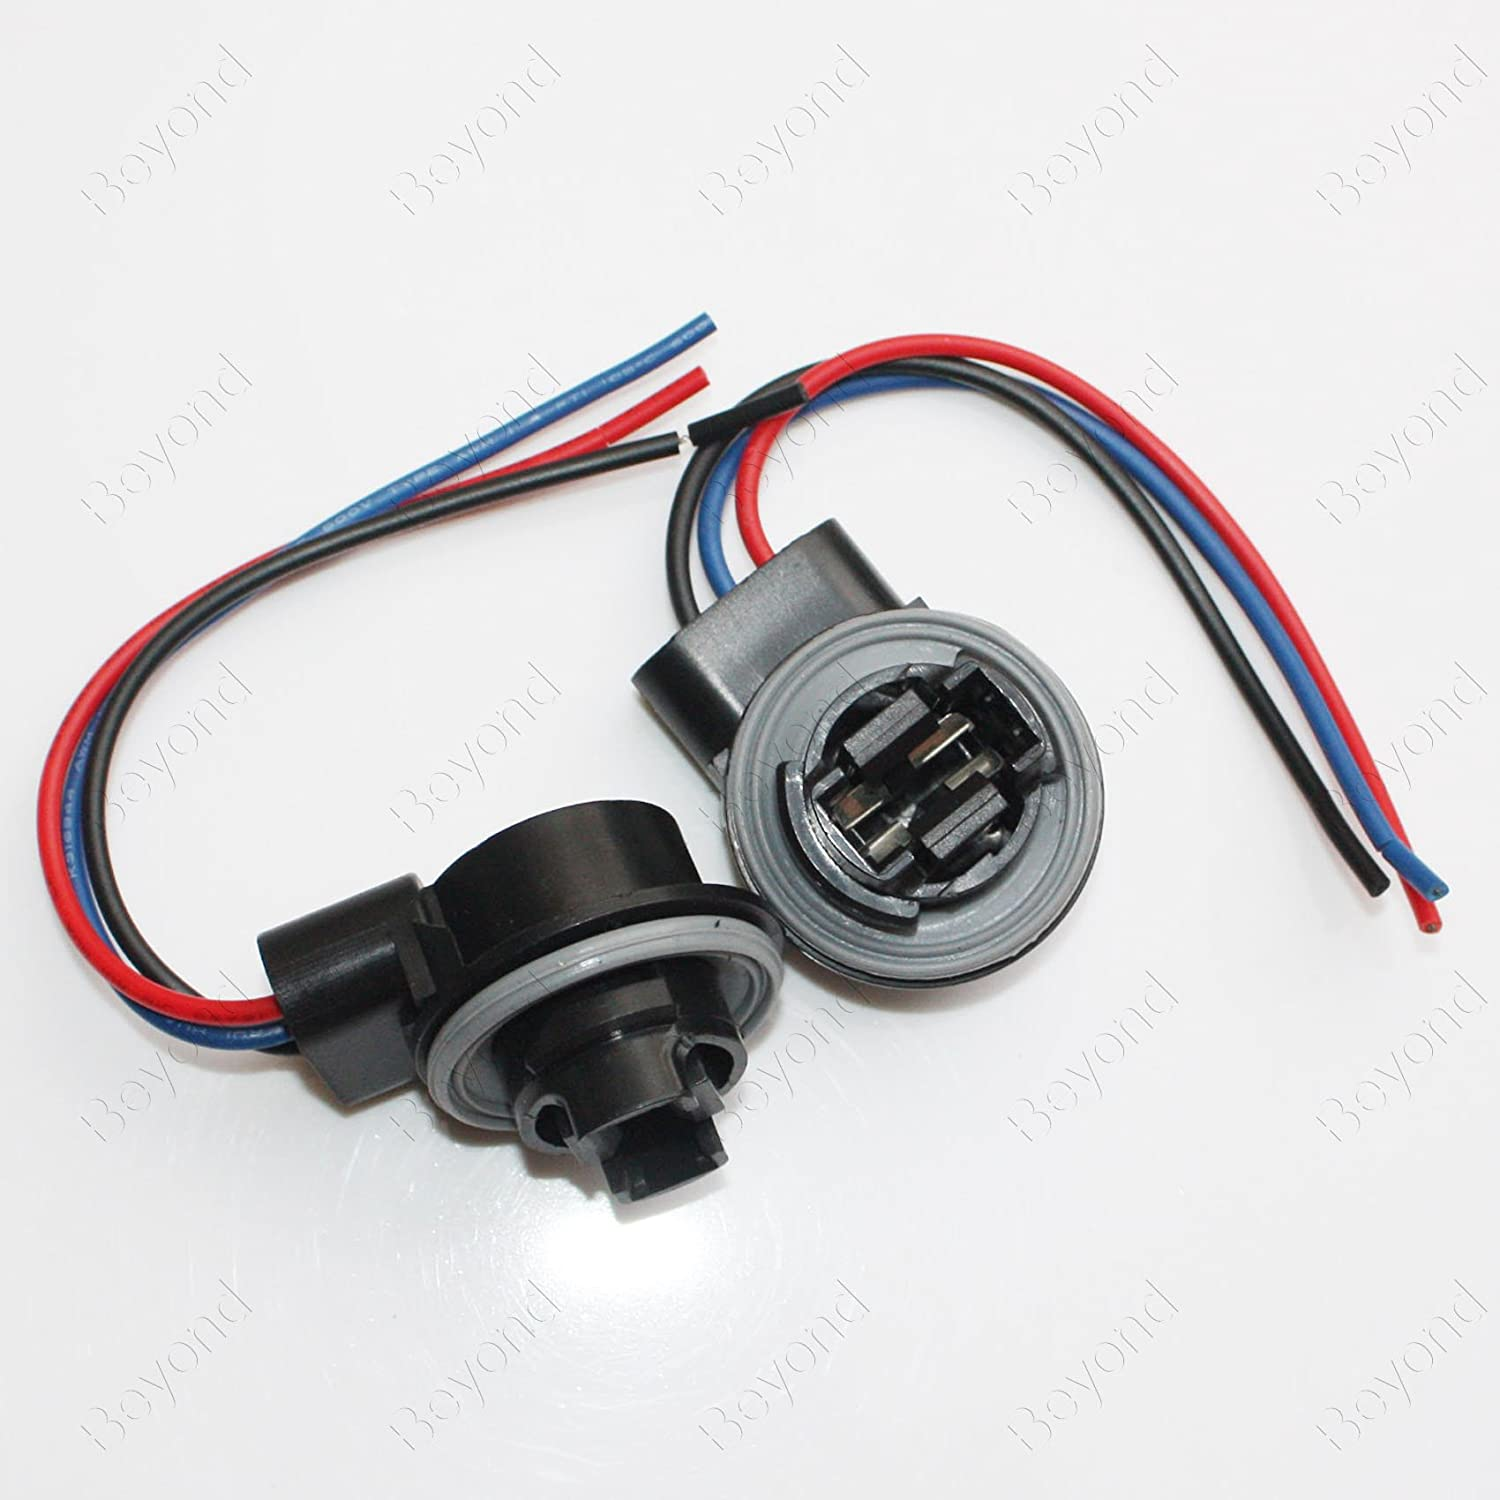 BYOPTO 2 Pcs (3157 female) Car Auto Truck HeadLight FOG Brake Turn Signal Light Bulb Socket Holder Replacement Connector Wire Harness Beyond Optoelectronic